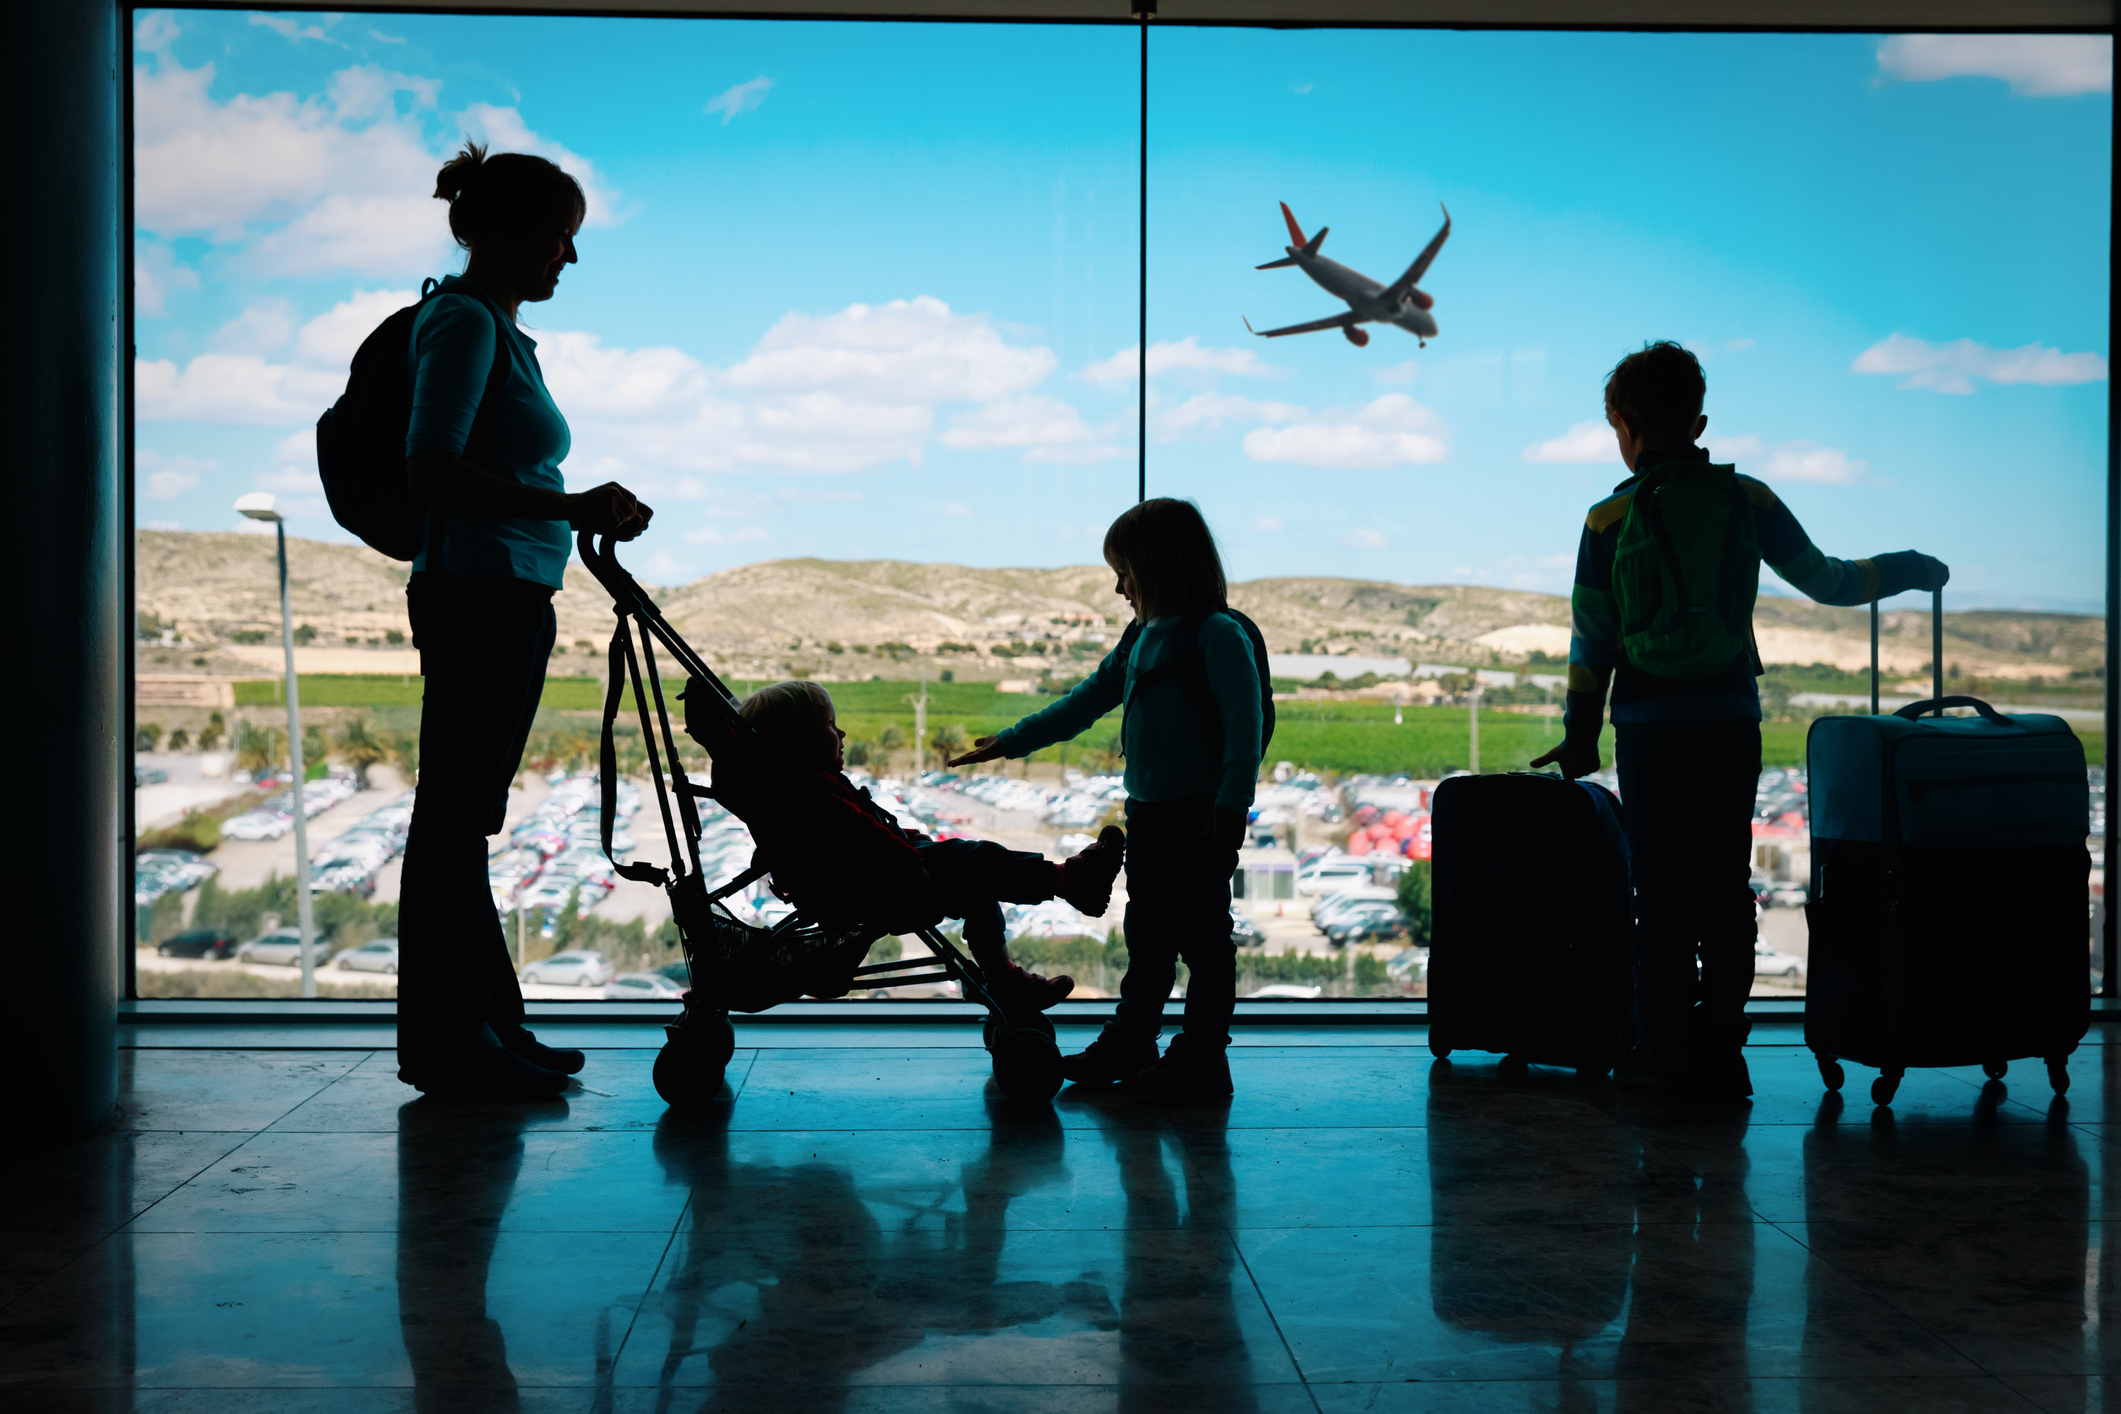 Mother with three children and luggage silhouetted in airport.